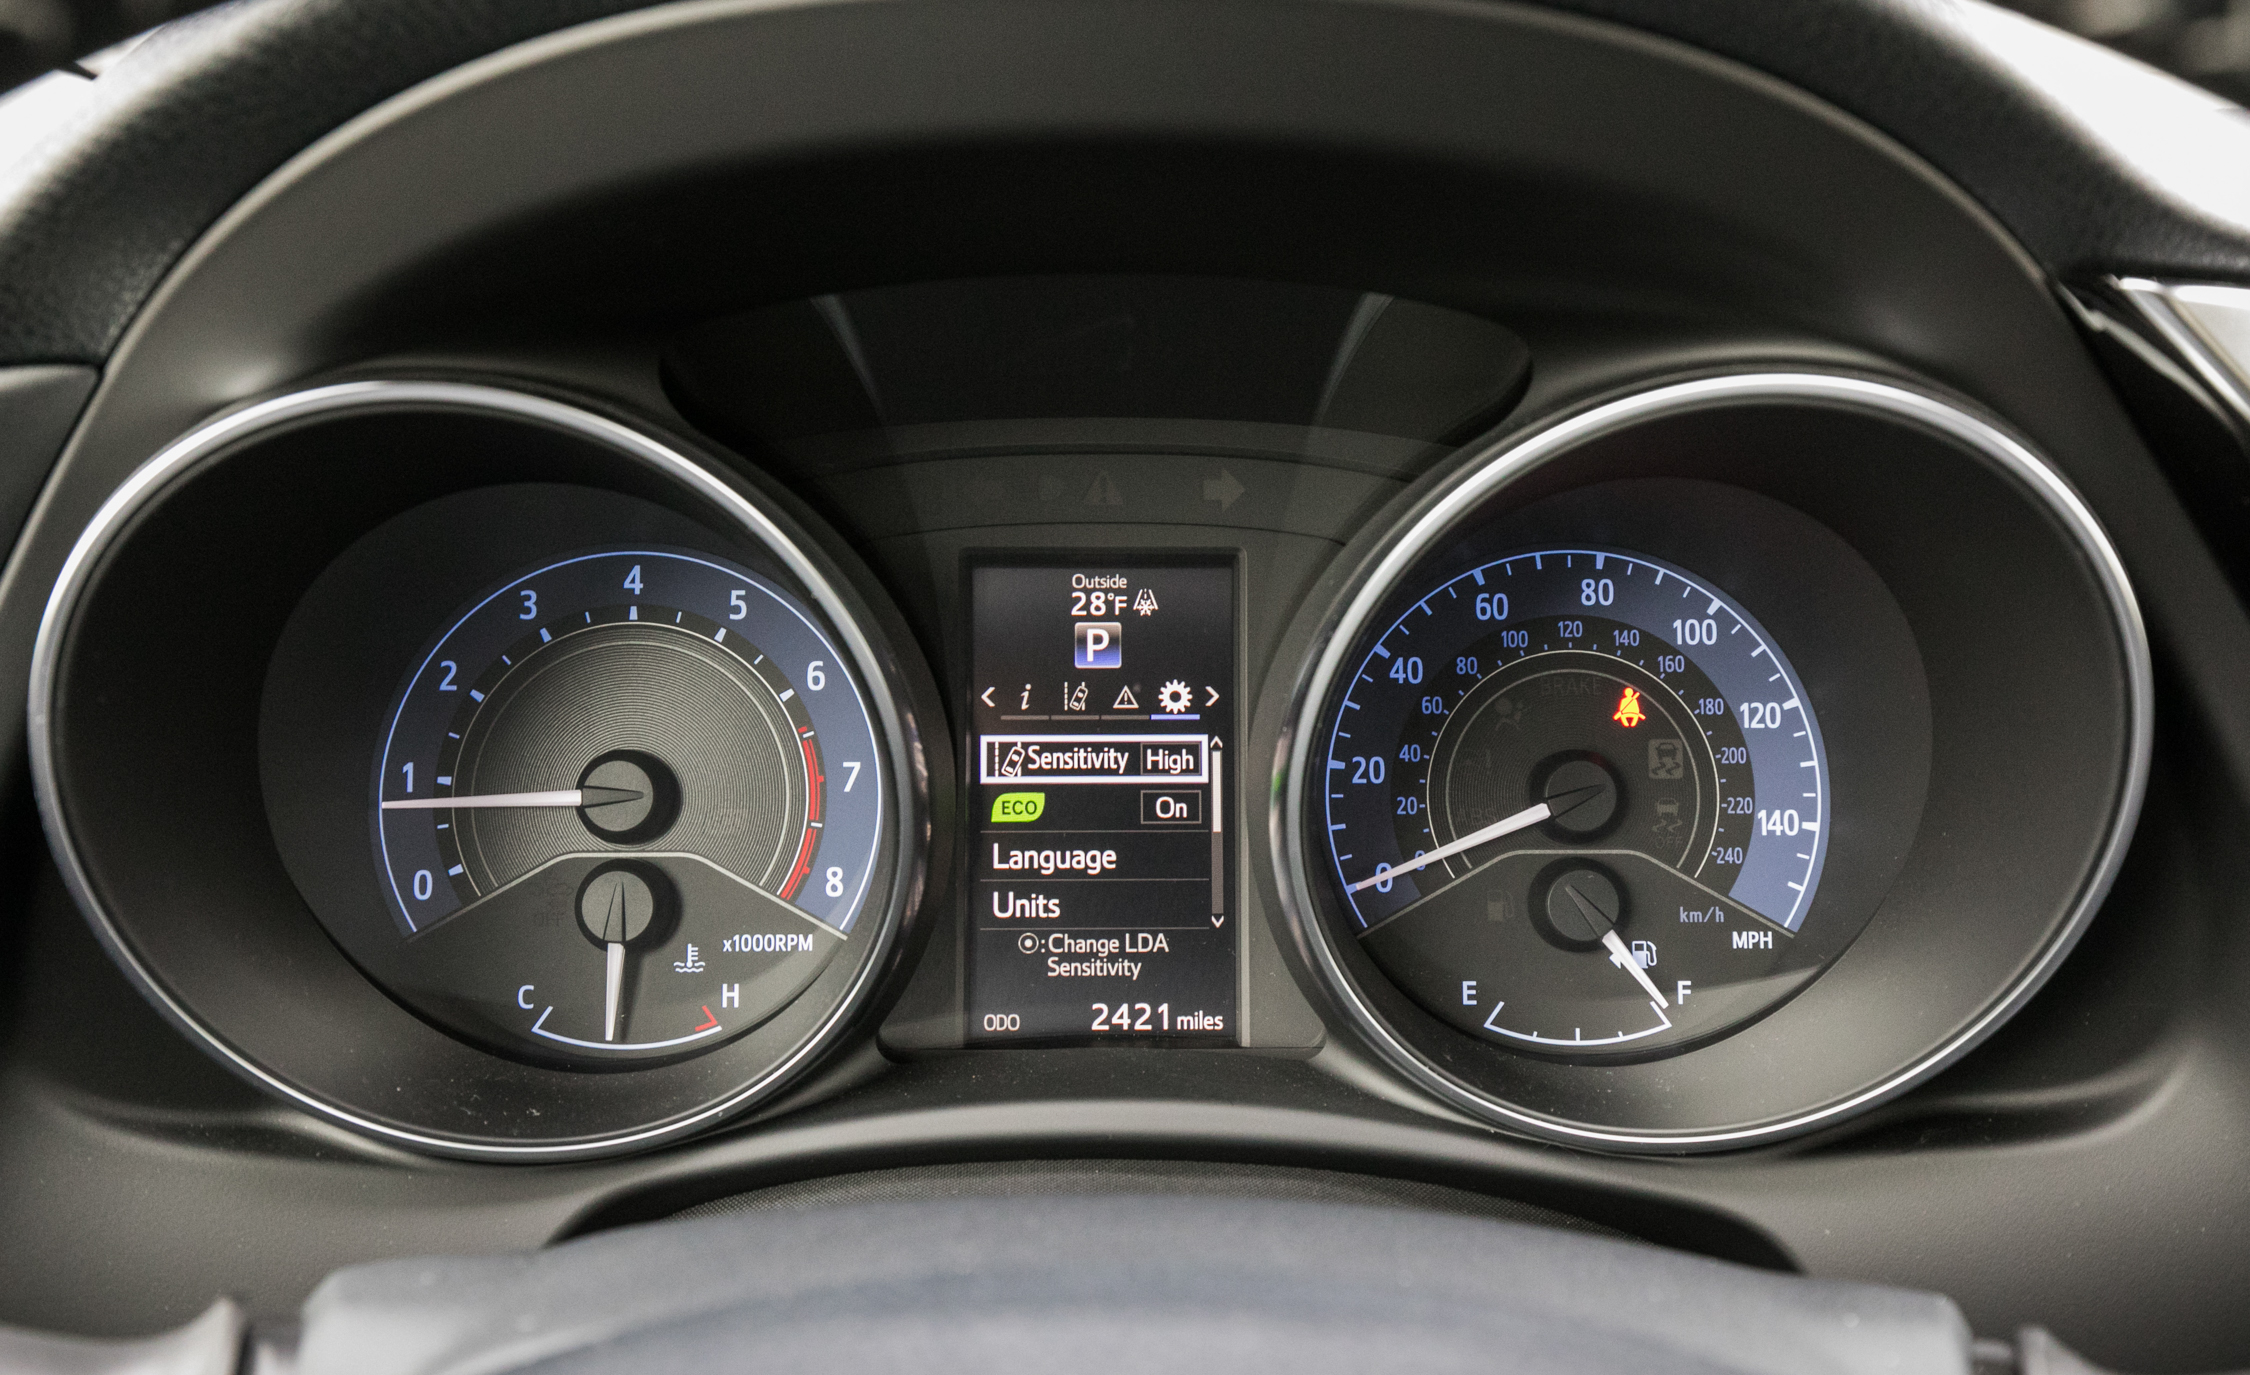 2017 Toyota Corolla IM Hatchback Interior View Speedometer Instrument Cluster (Photo 37 of 52)